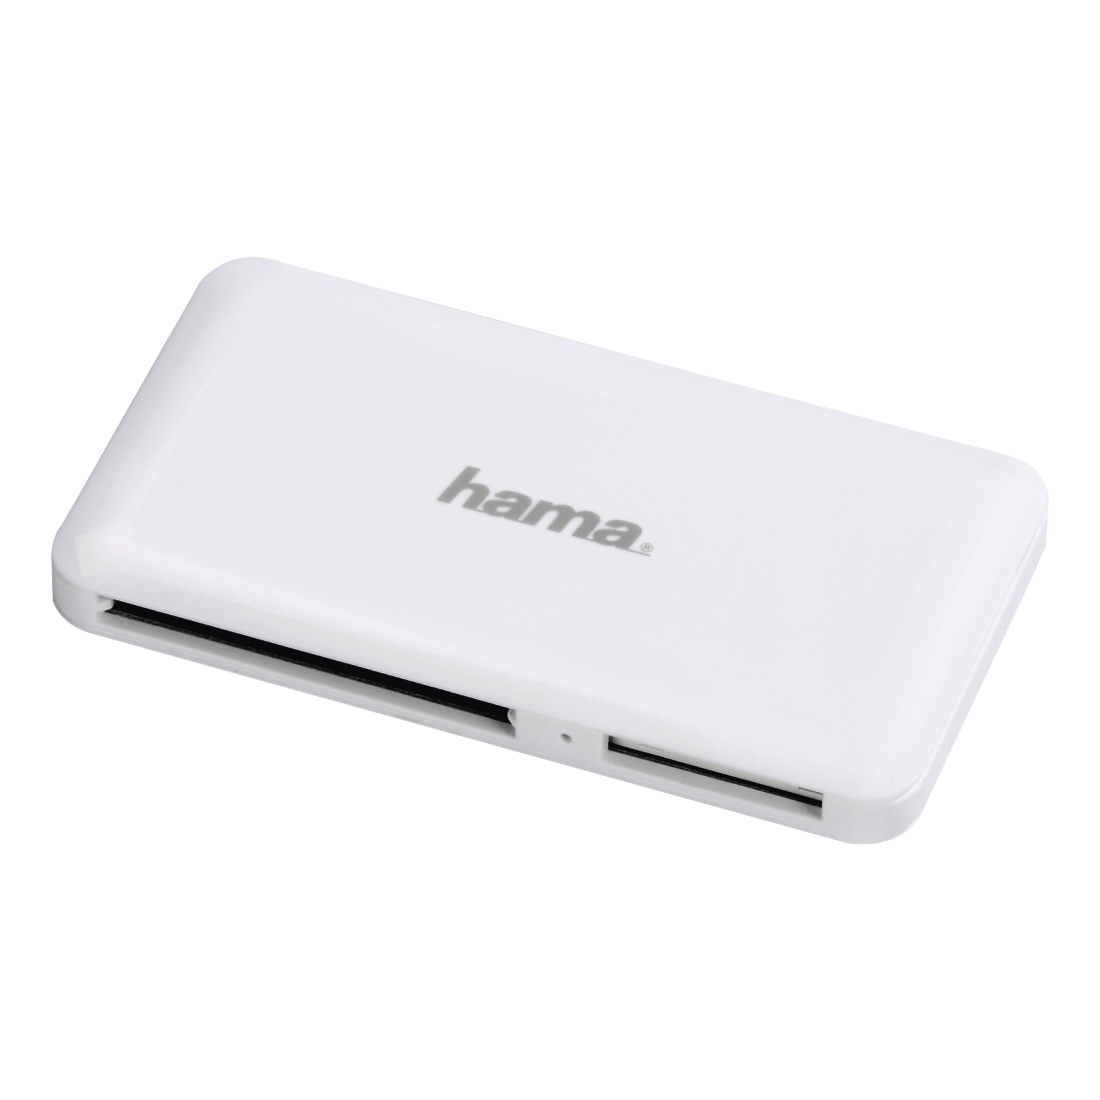 HAMA Slim USB 3.0 Card Reader Driver Download (2019)